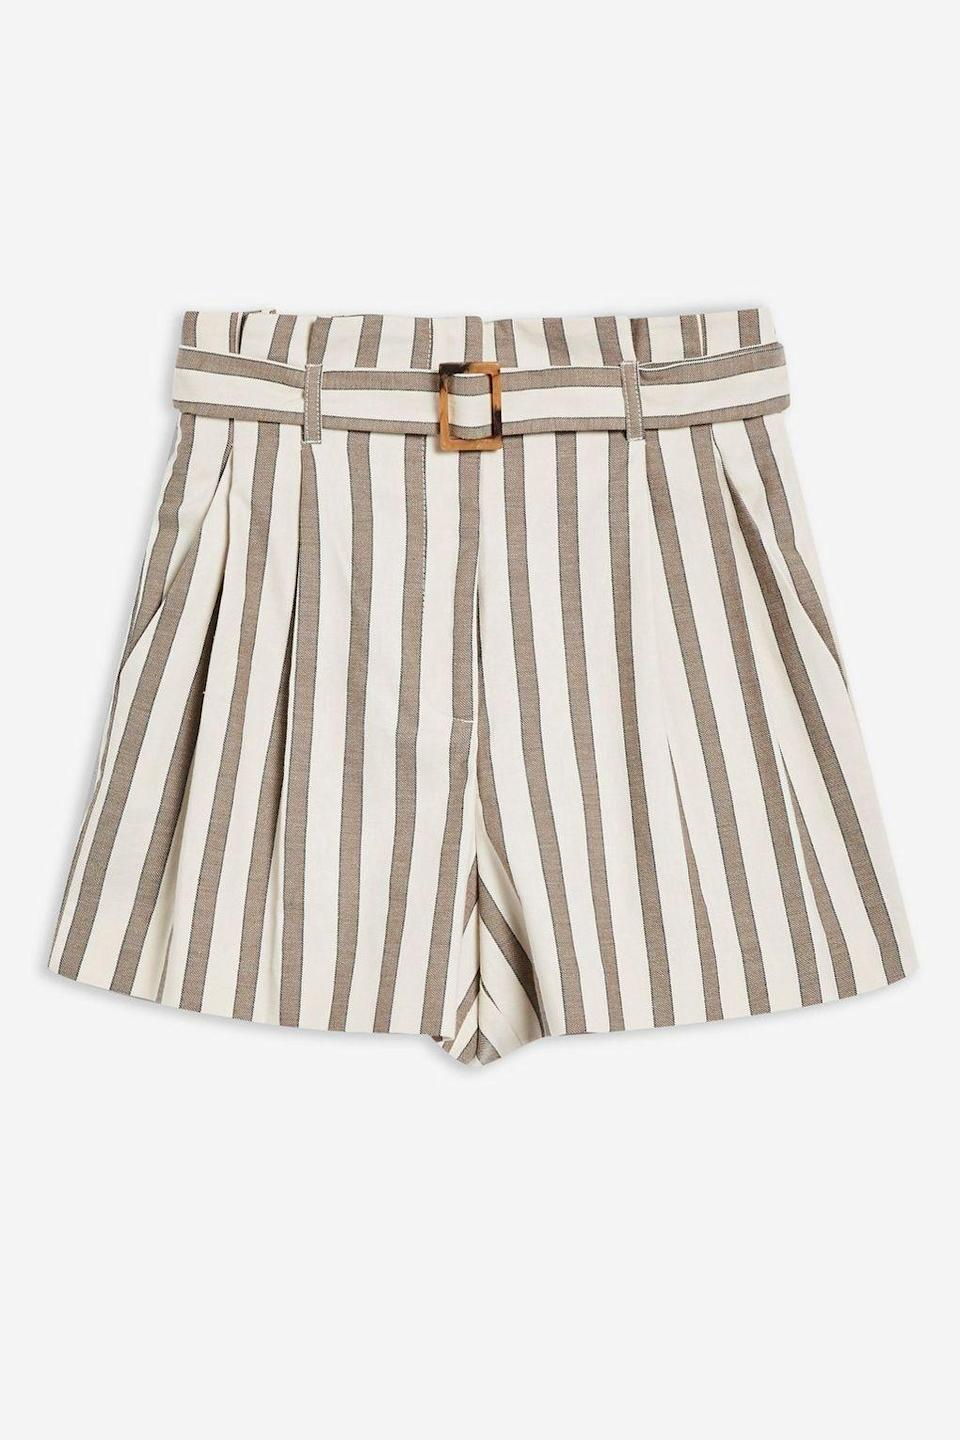 "<p><span>These high-waisted, belted shorts with universally flattering vertical stripes are perfect for those that hate themselves in denim cutoffs. </span><br><em><a href=""http://www.topshop.com/en/tsuk/product/new-in-this-week-2169932/new-in-fashion-6367514/taupe-striped-shorts-7730649?bi=0&ps=20"" rel=""nofollow noopener"" target=""_blank"" data-ylk=""slk:Buy here."" class=""link rapid-noclick-resp""><span>Buy here.</span></a></em> </p>"